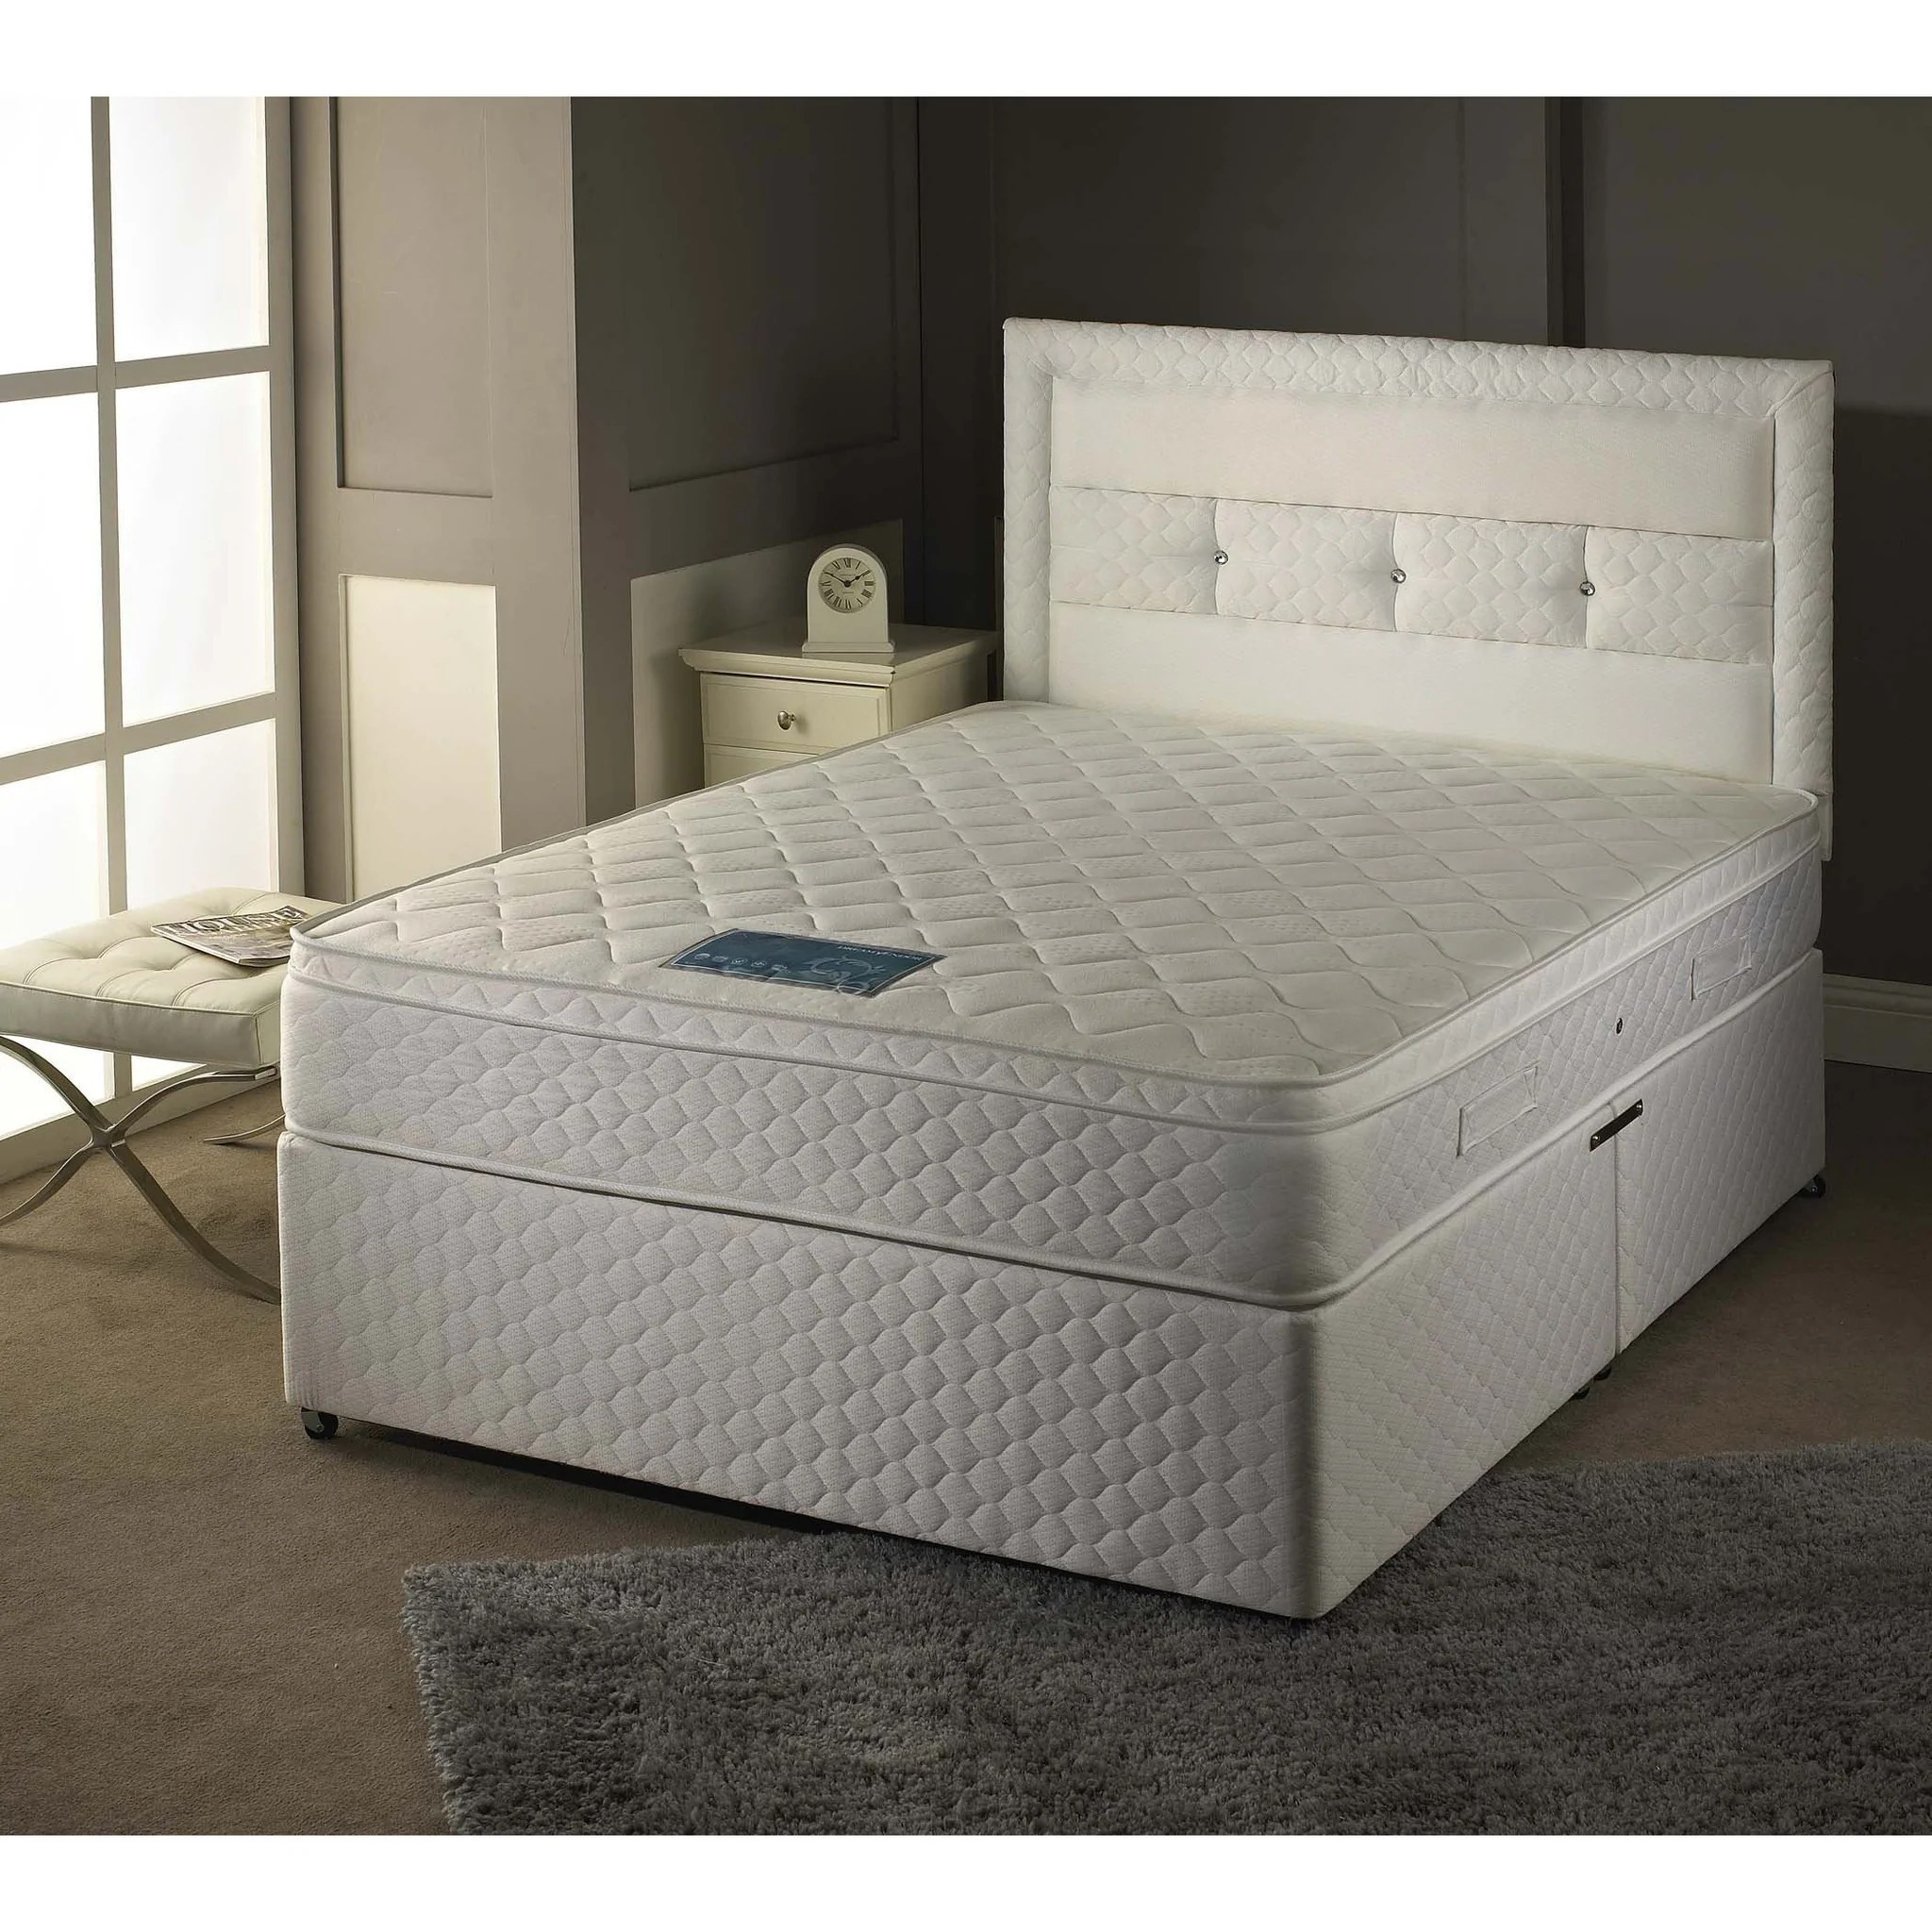 Double Divan Beds Sheraton 1000 Double Divan Bed Sure Sleep Beds